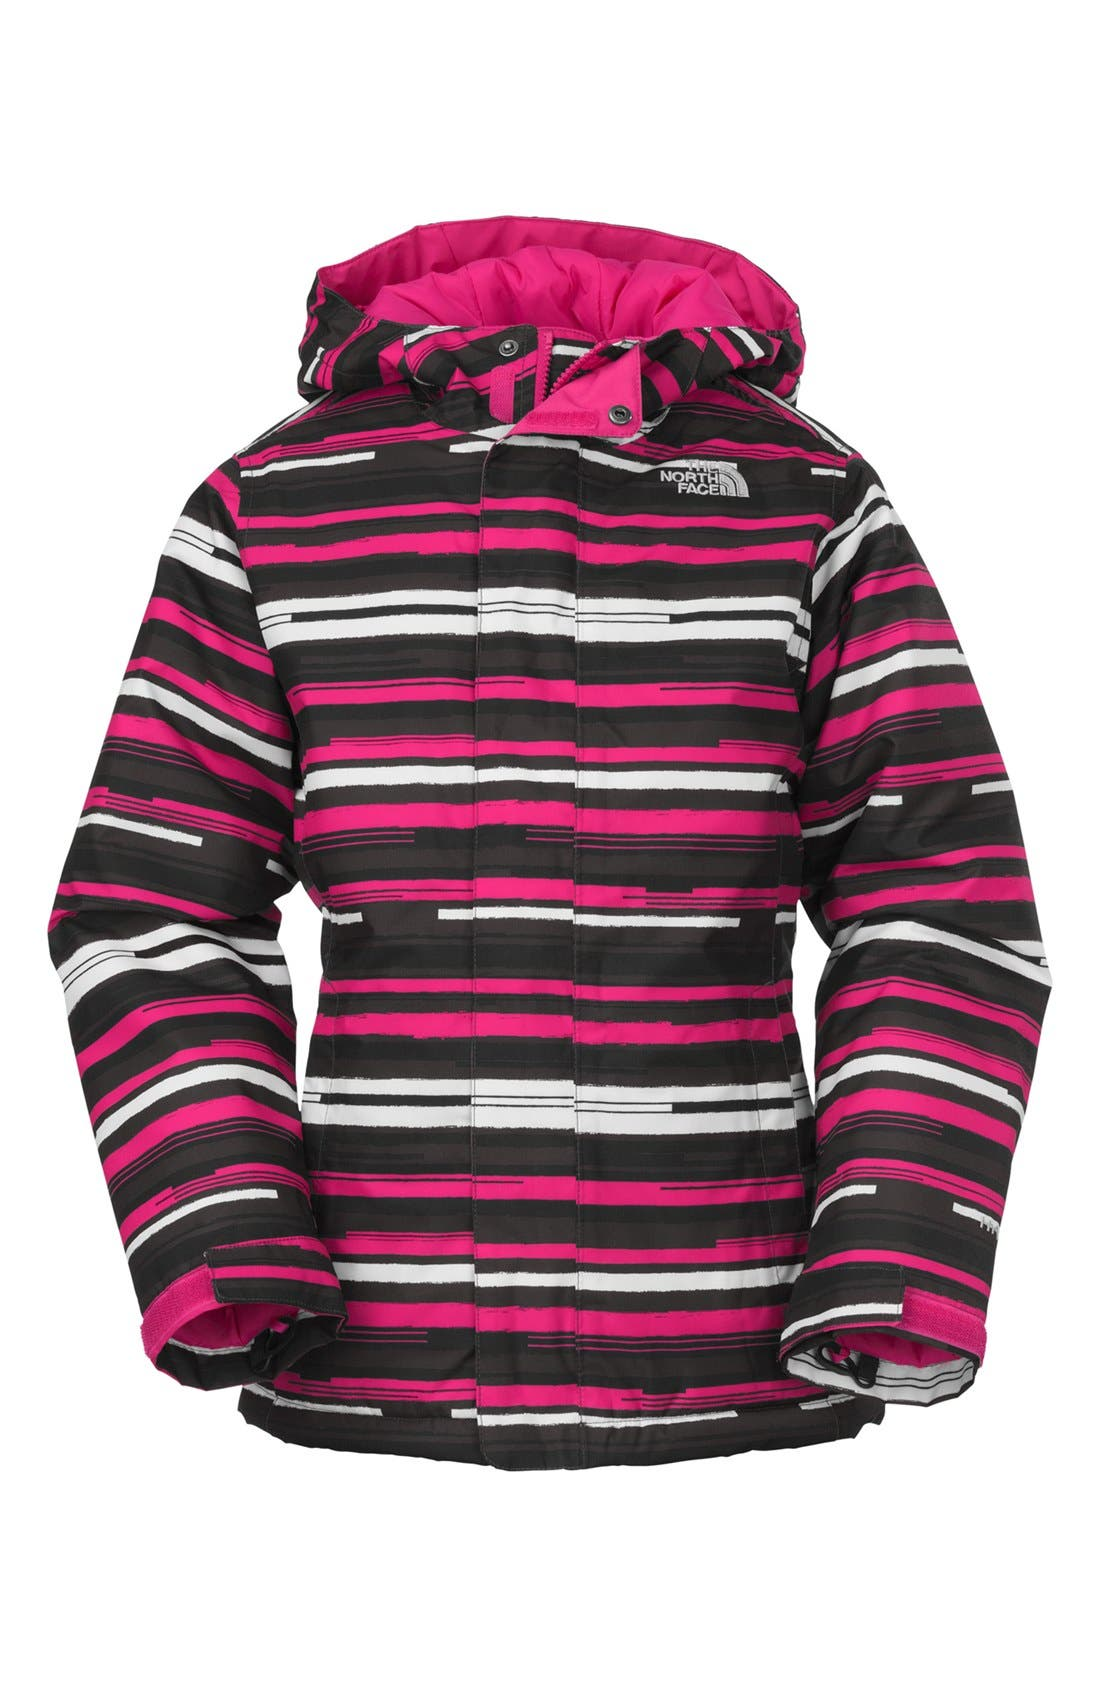 Alternate Image 1 Selected - The North Face 'Adalee' Jacket (Little Girls & Big Girls)